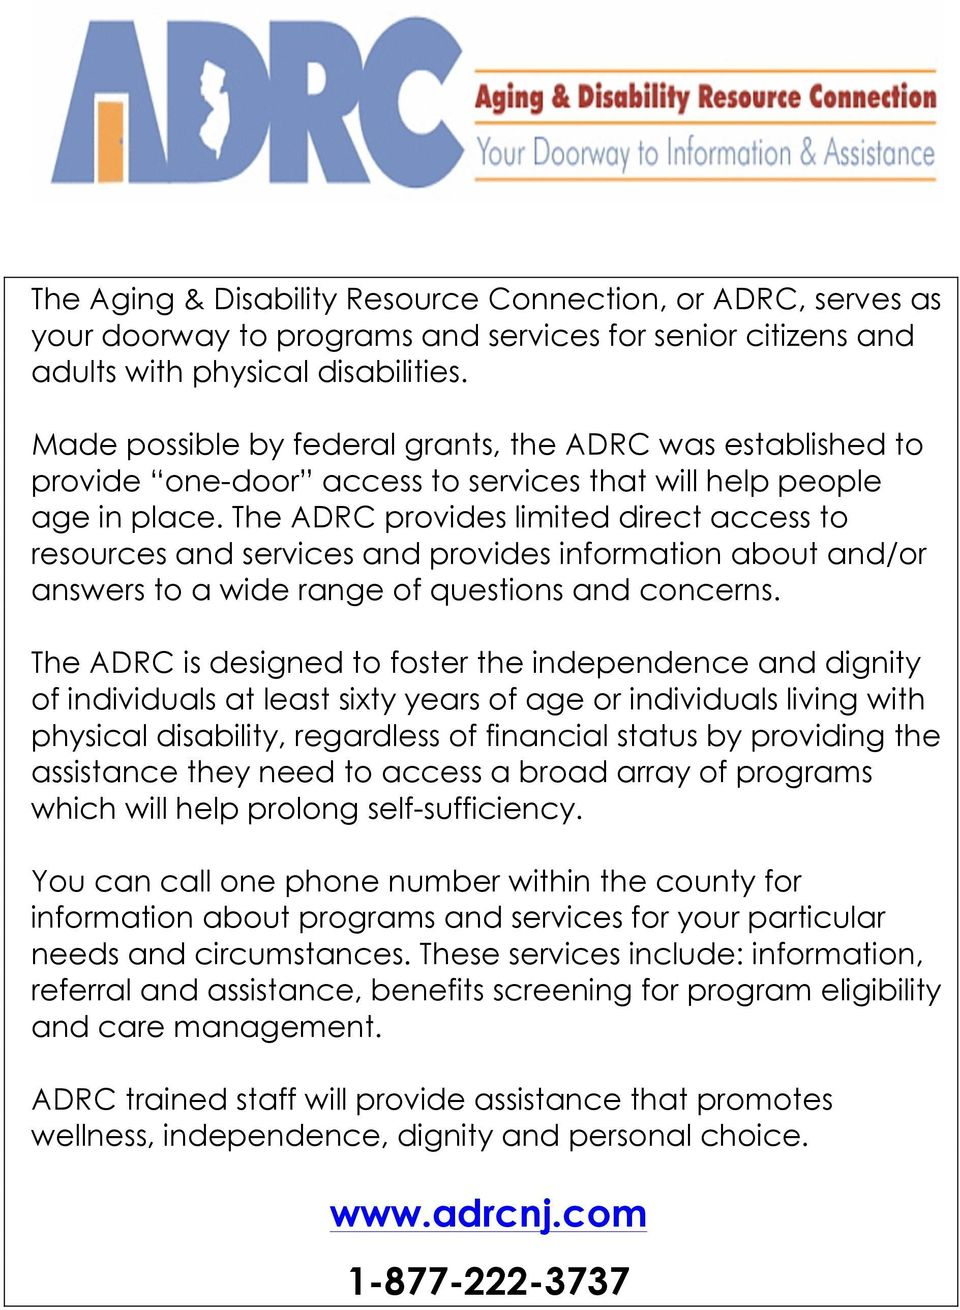 The ADRC provides limited direct access to resources and services and provides information about and/or answers to a wide range of questions and concerns.